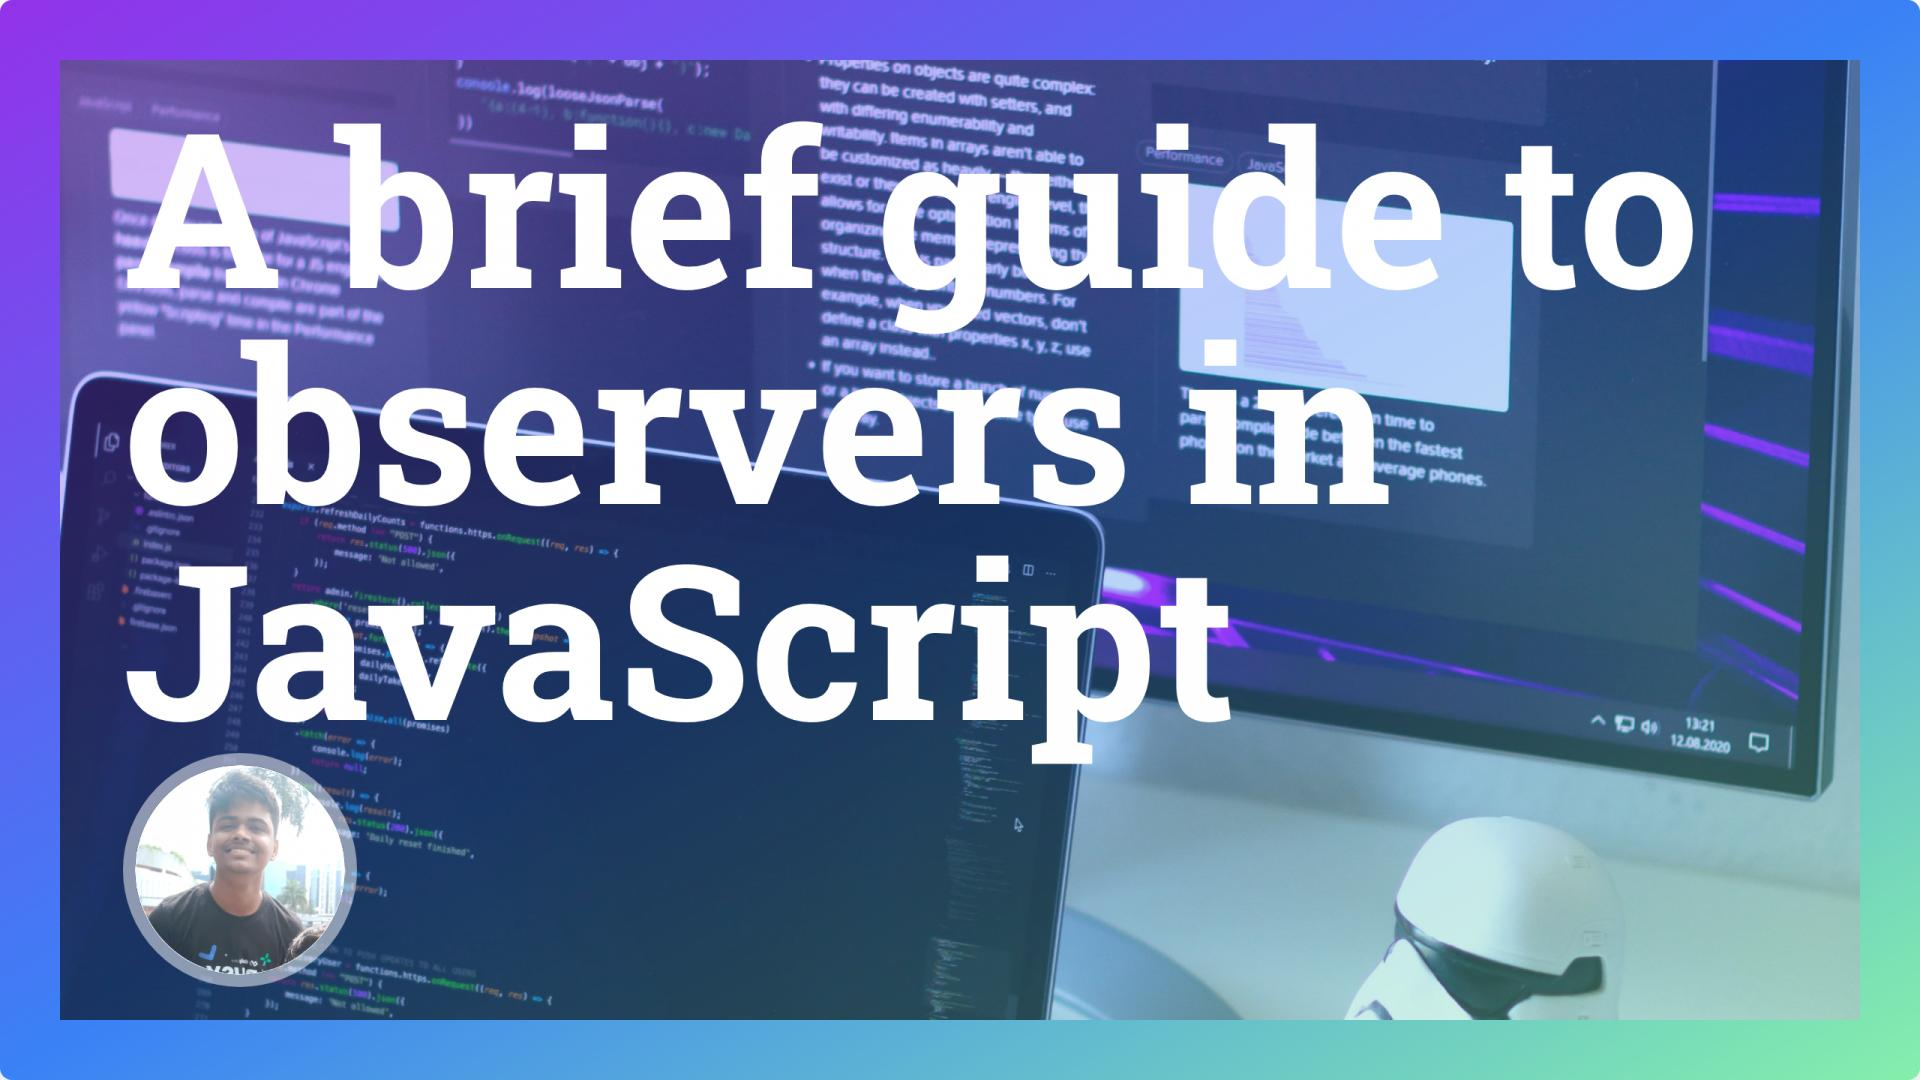 A brief guide to observers in JavaScript